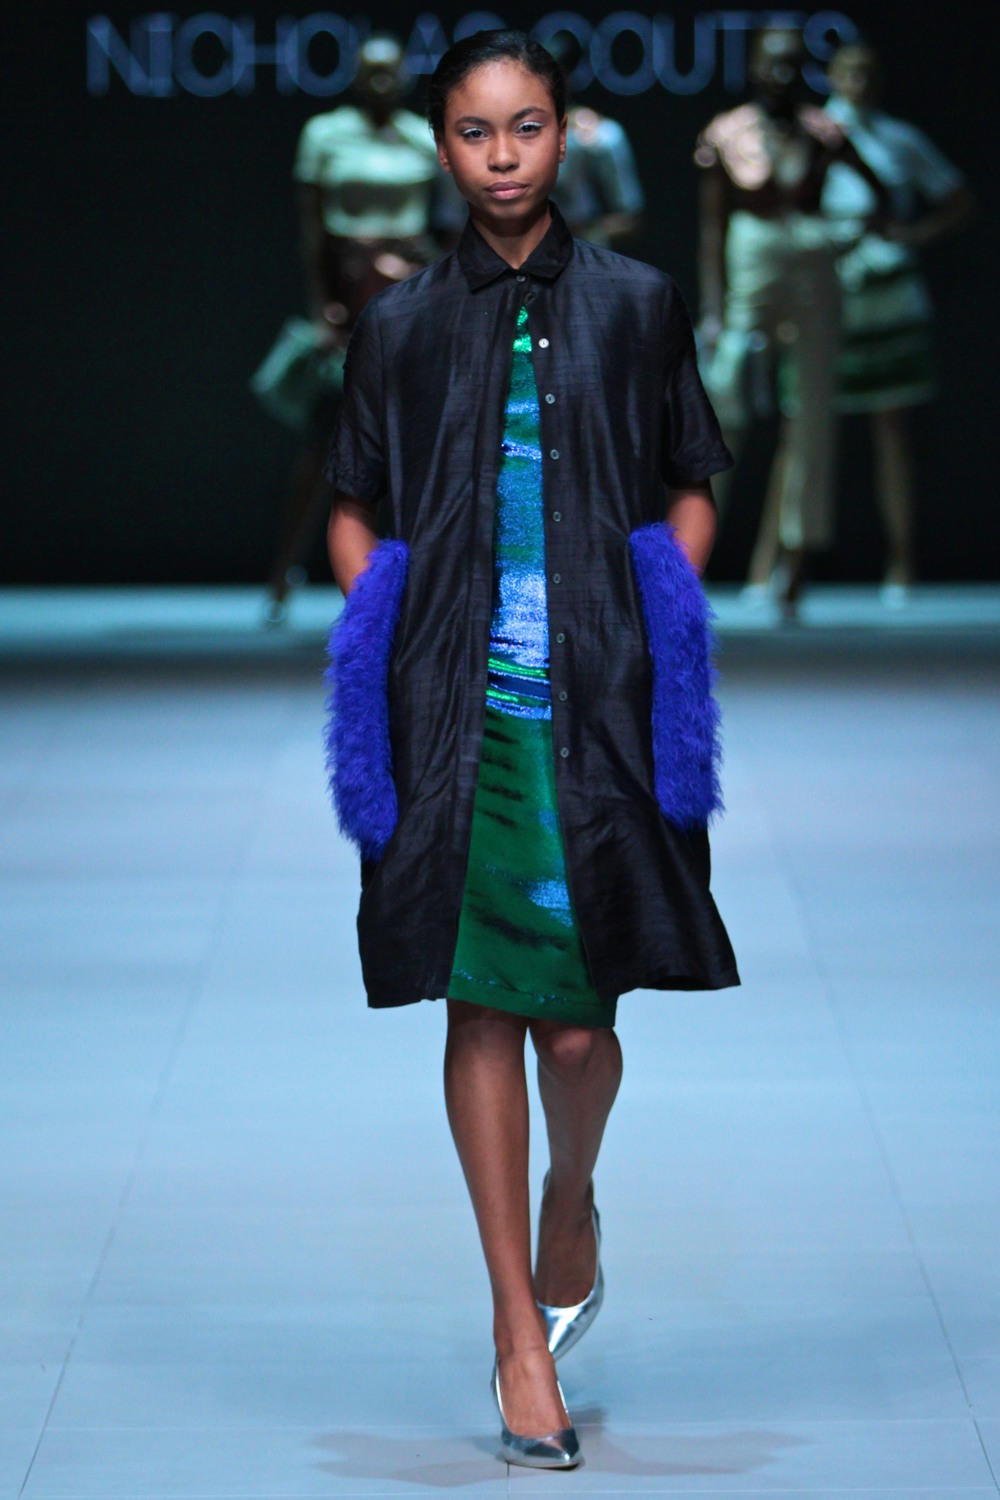 14_MBFWCT_SDR_0466_NicholasCoutts.jpg